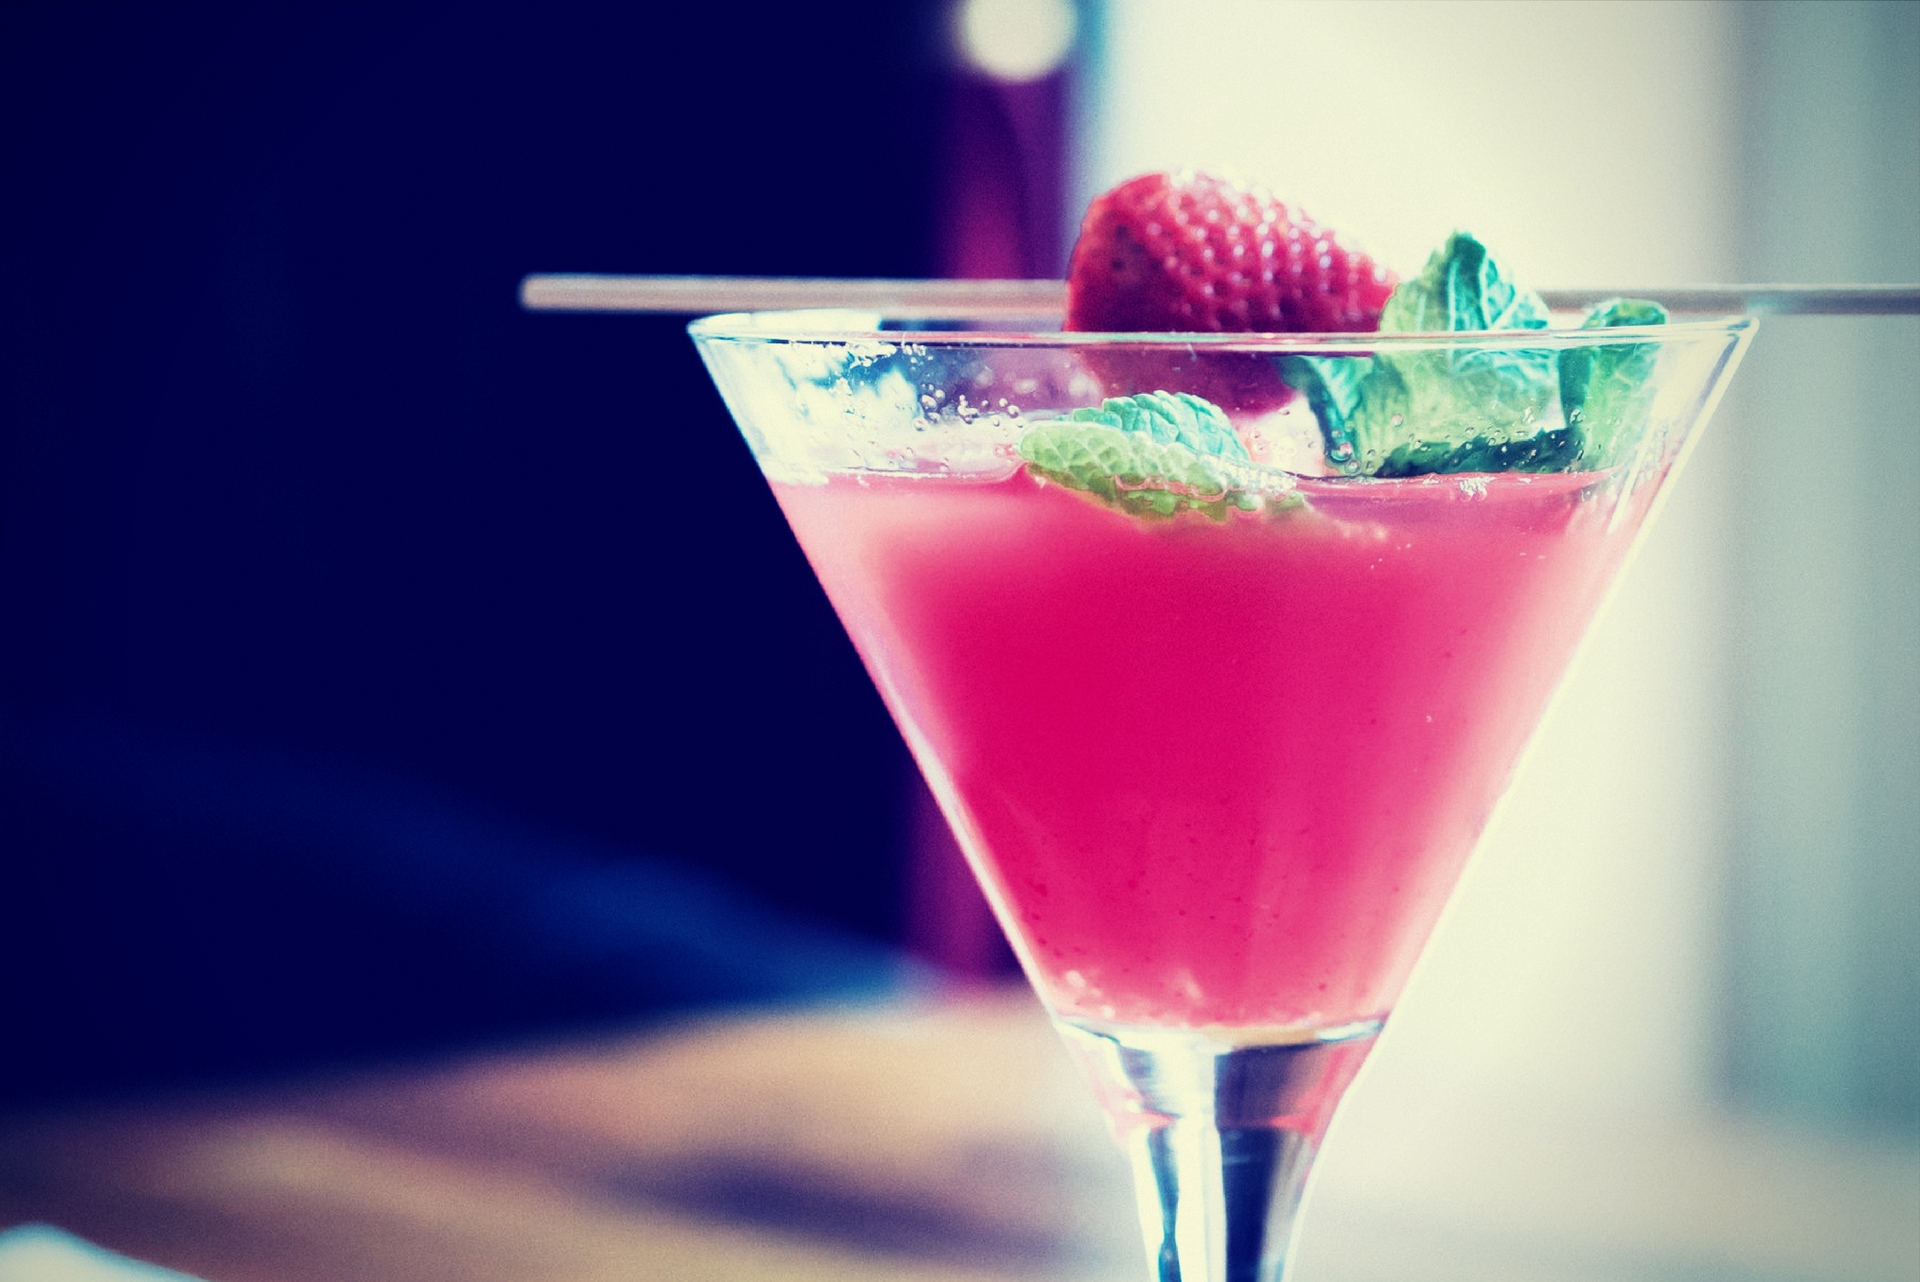 19. Juli - National Daiquiri Day | Schnapsblatt